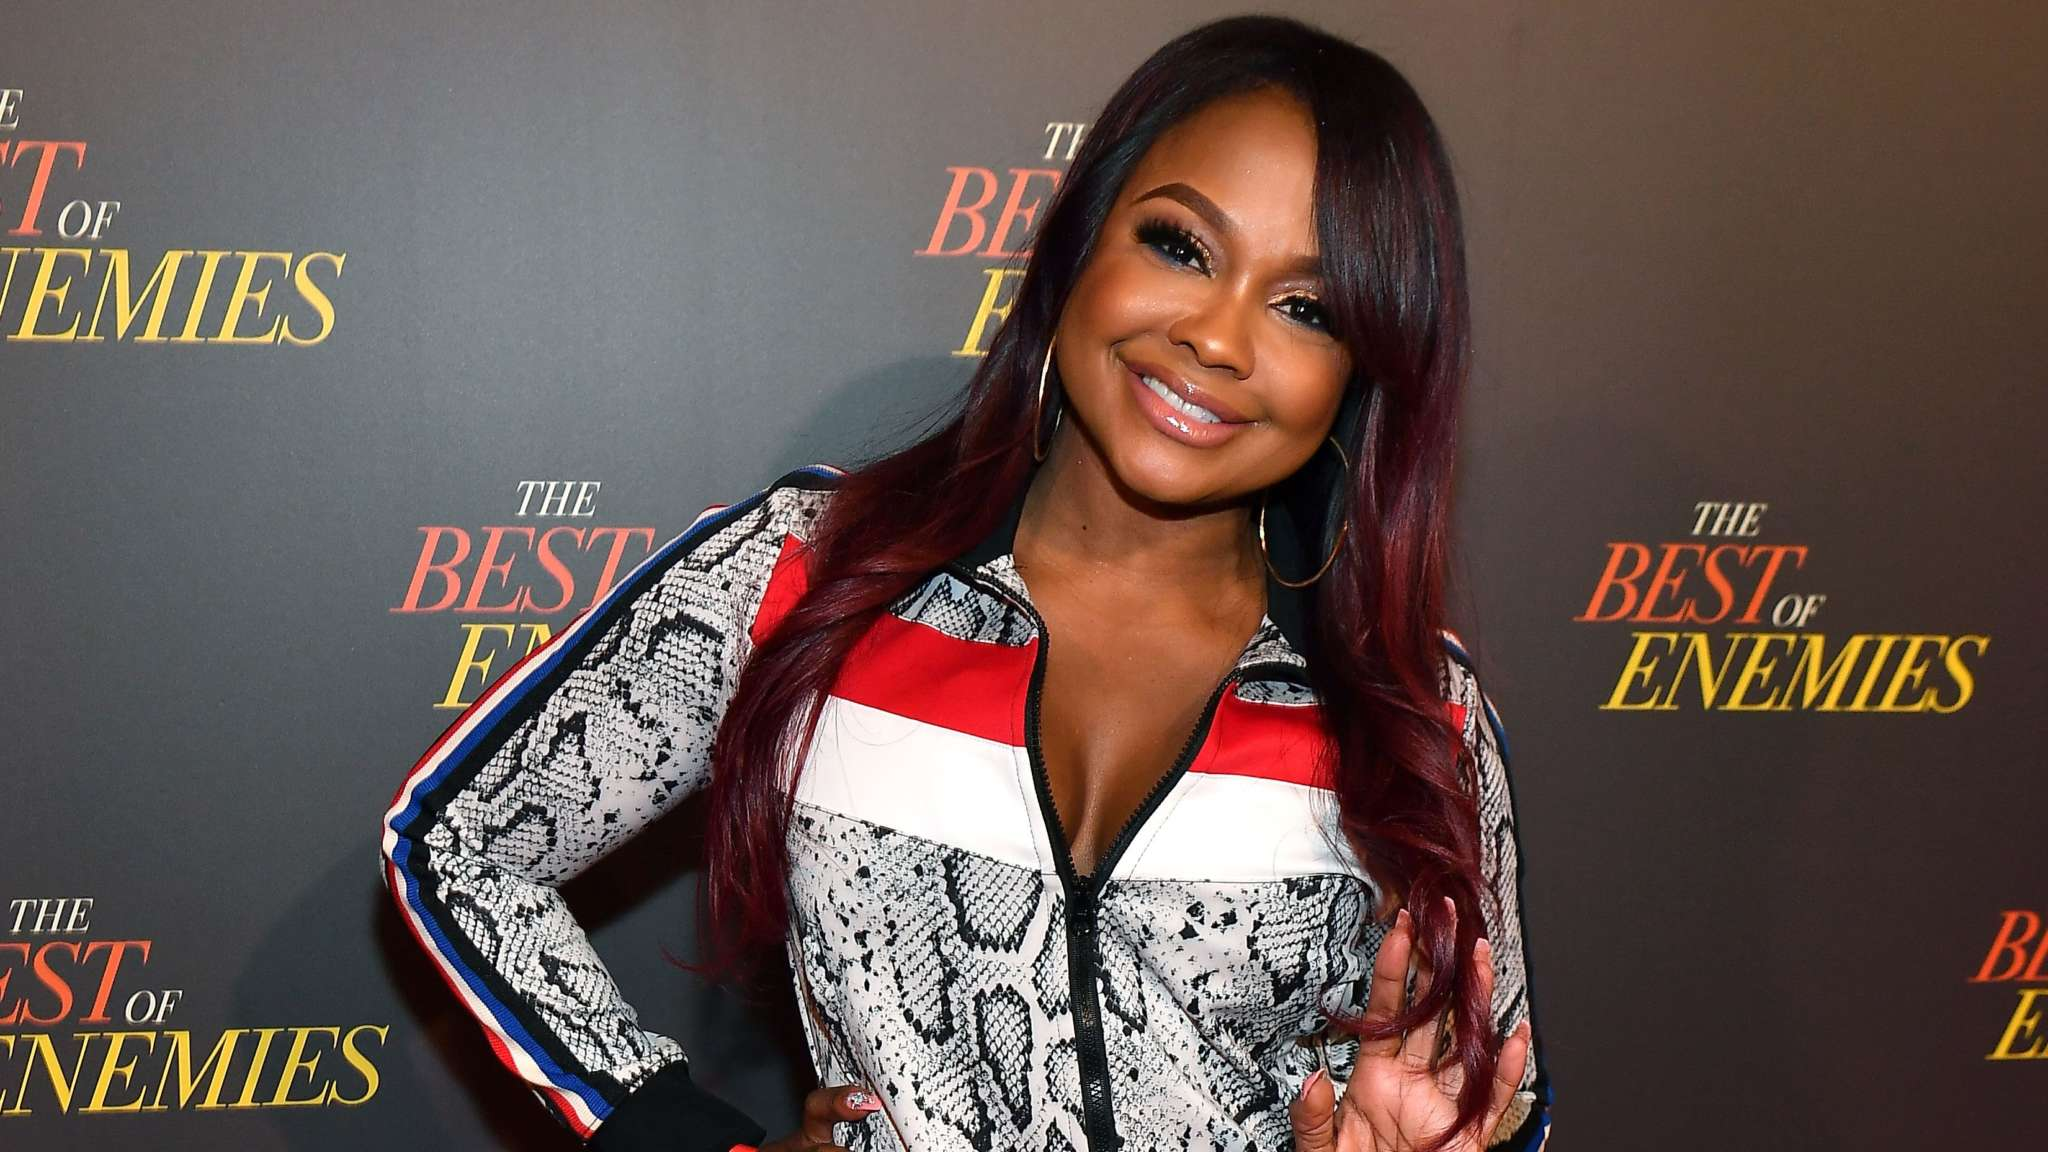 Phaedra Parks Tells Fans To Protect Their Souls – See The Video She Shared